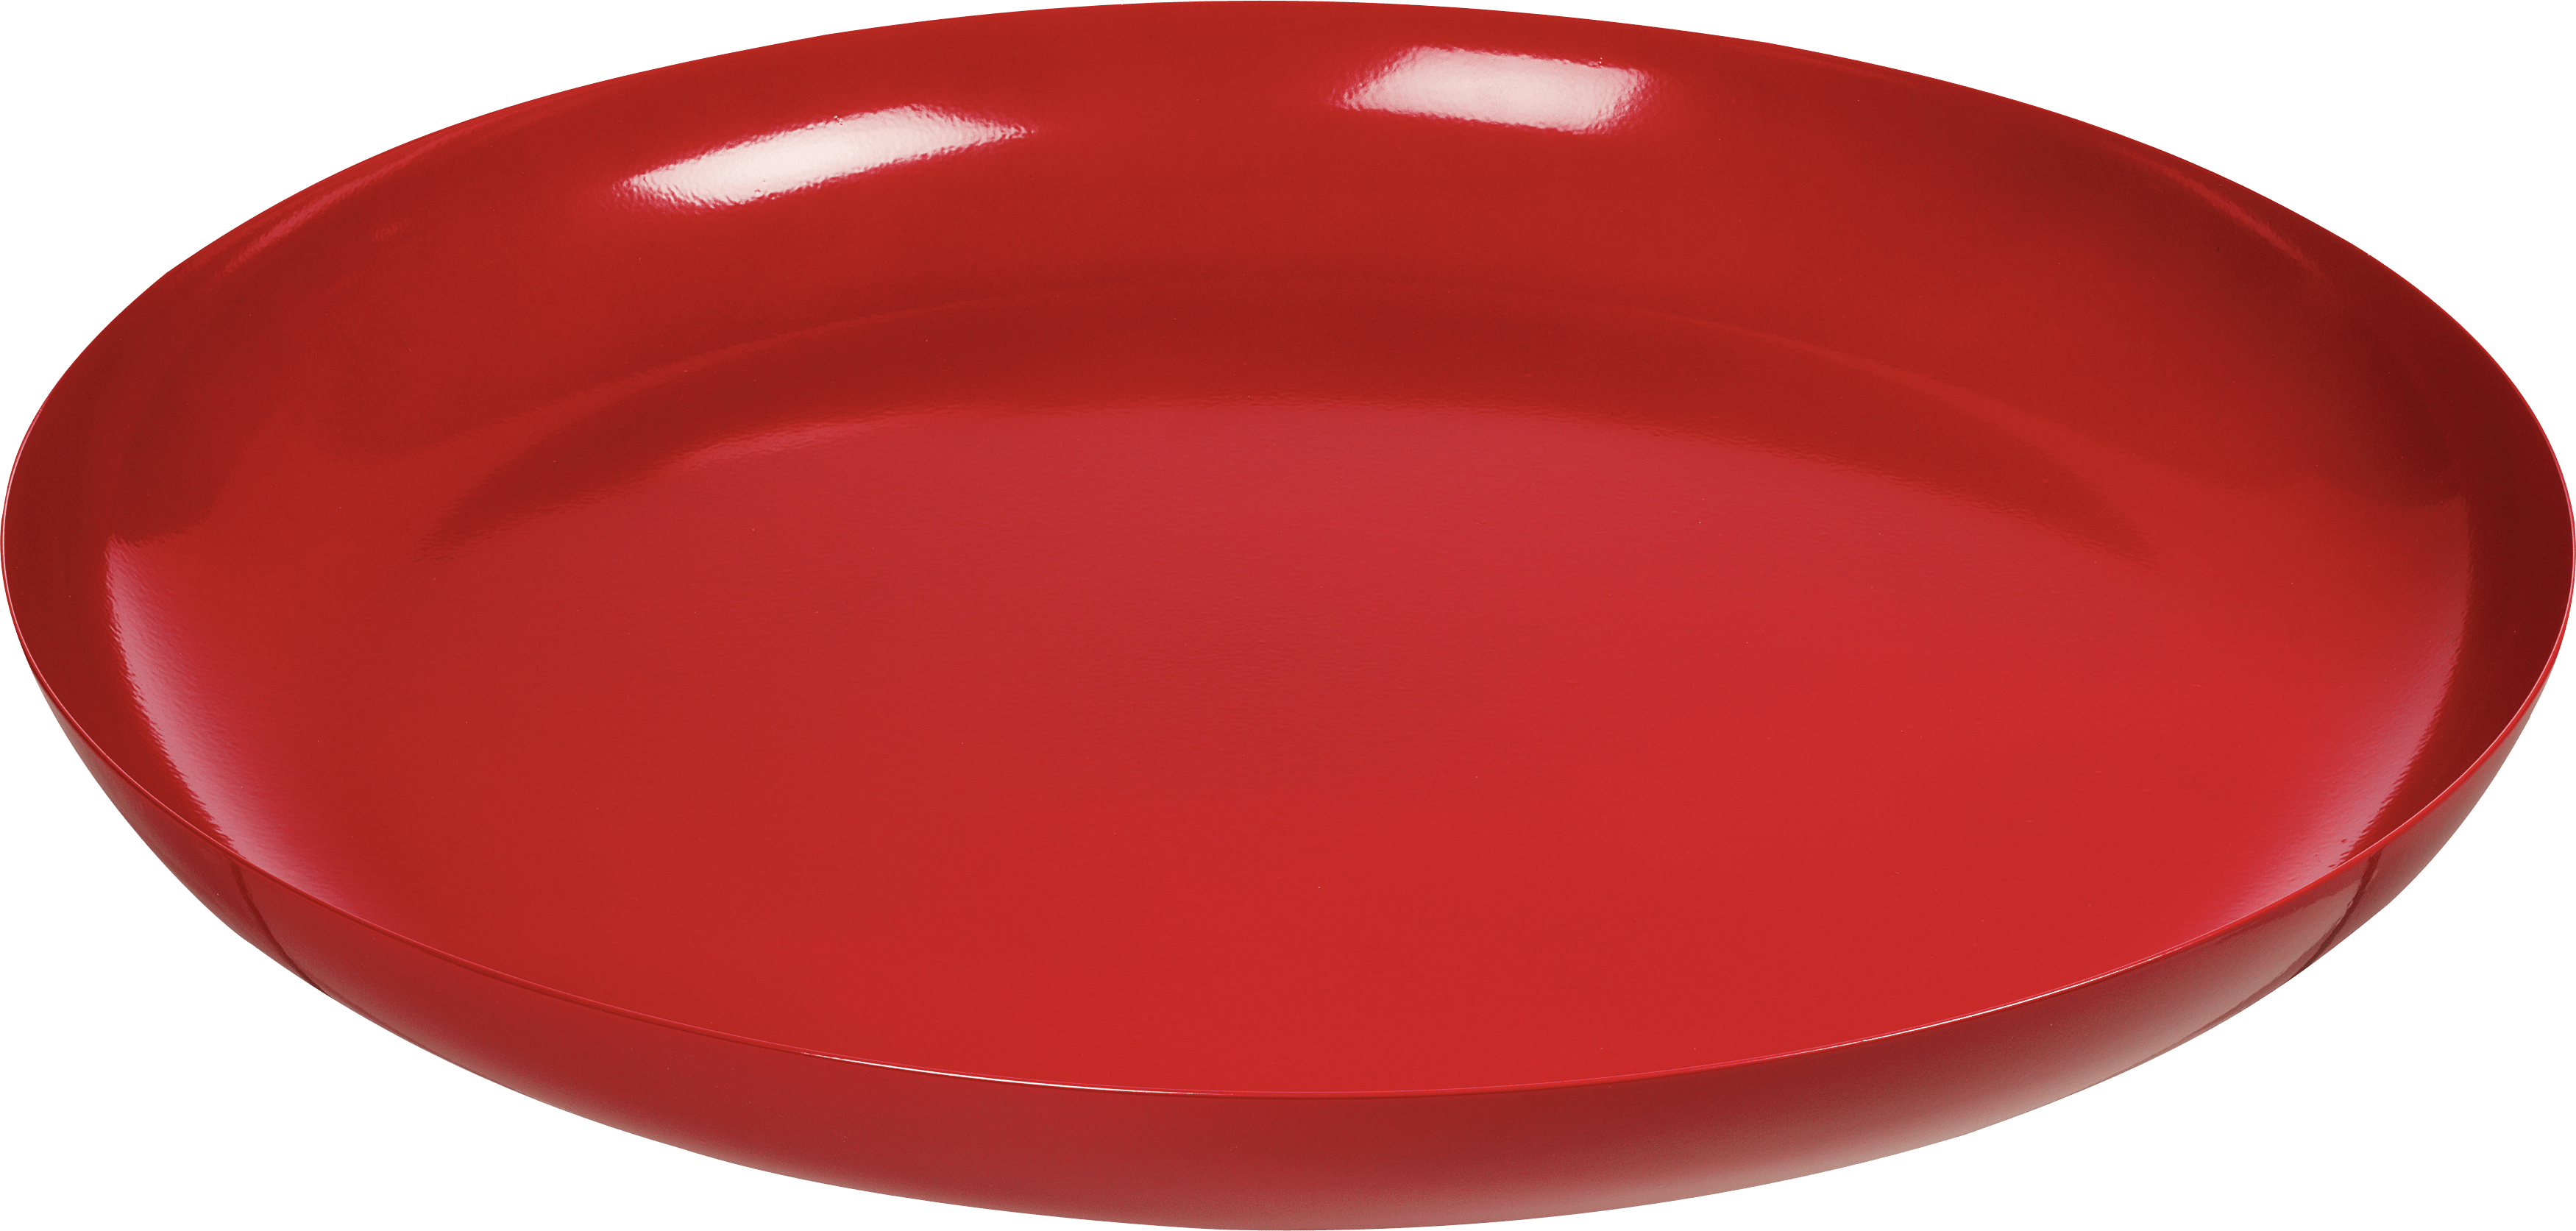 Plate PNG - 3196